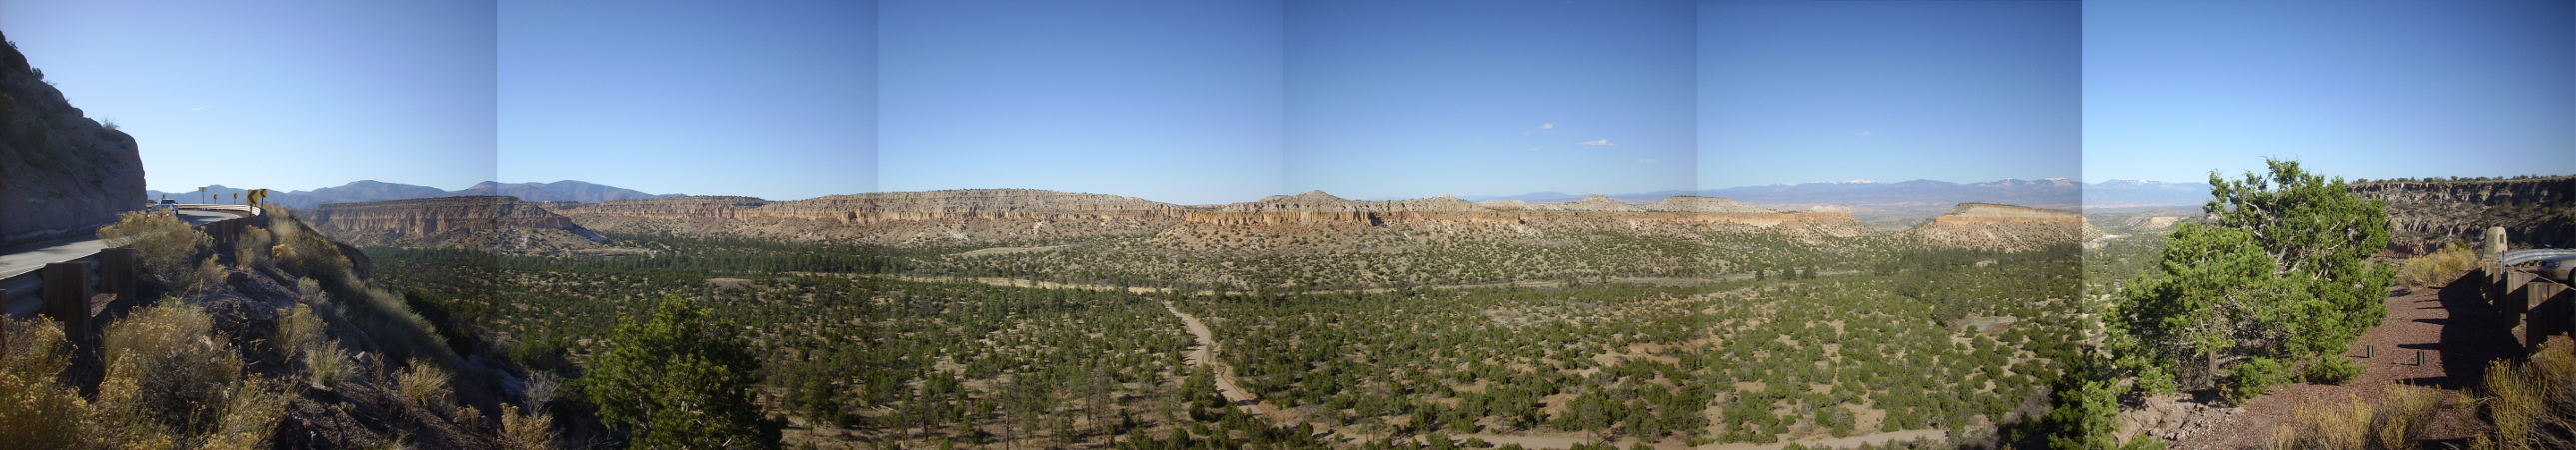 Pueblo Canyon from Clinton P. Anderson Scenic Overlook